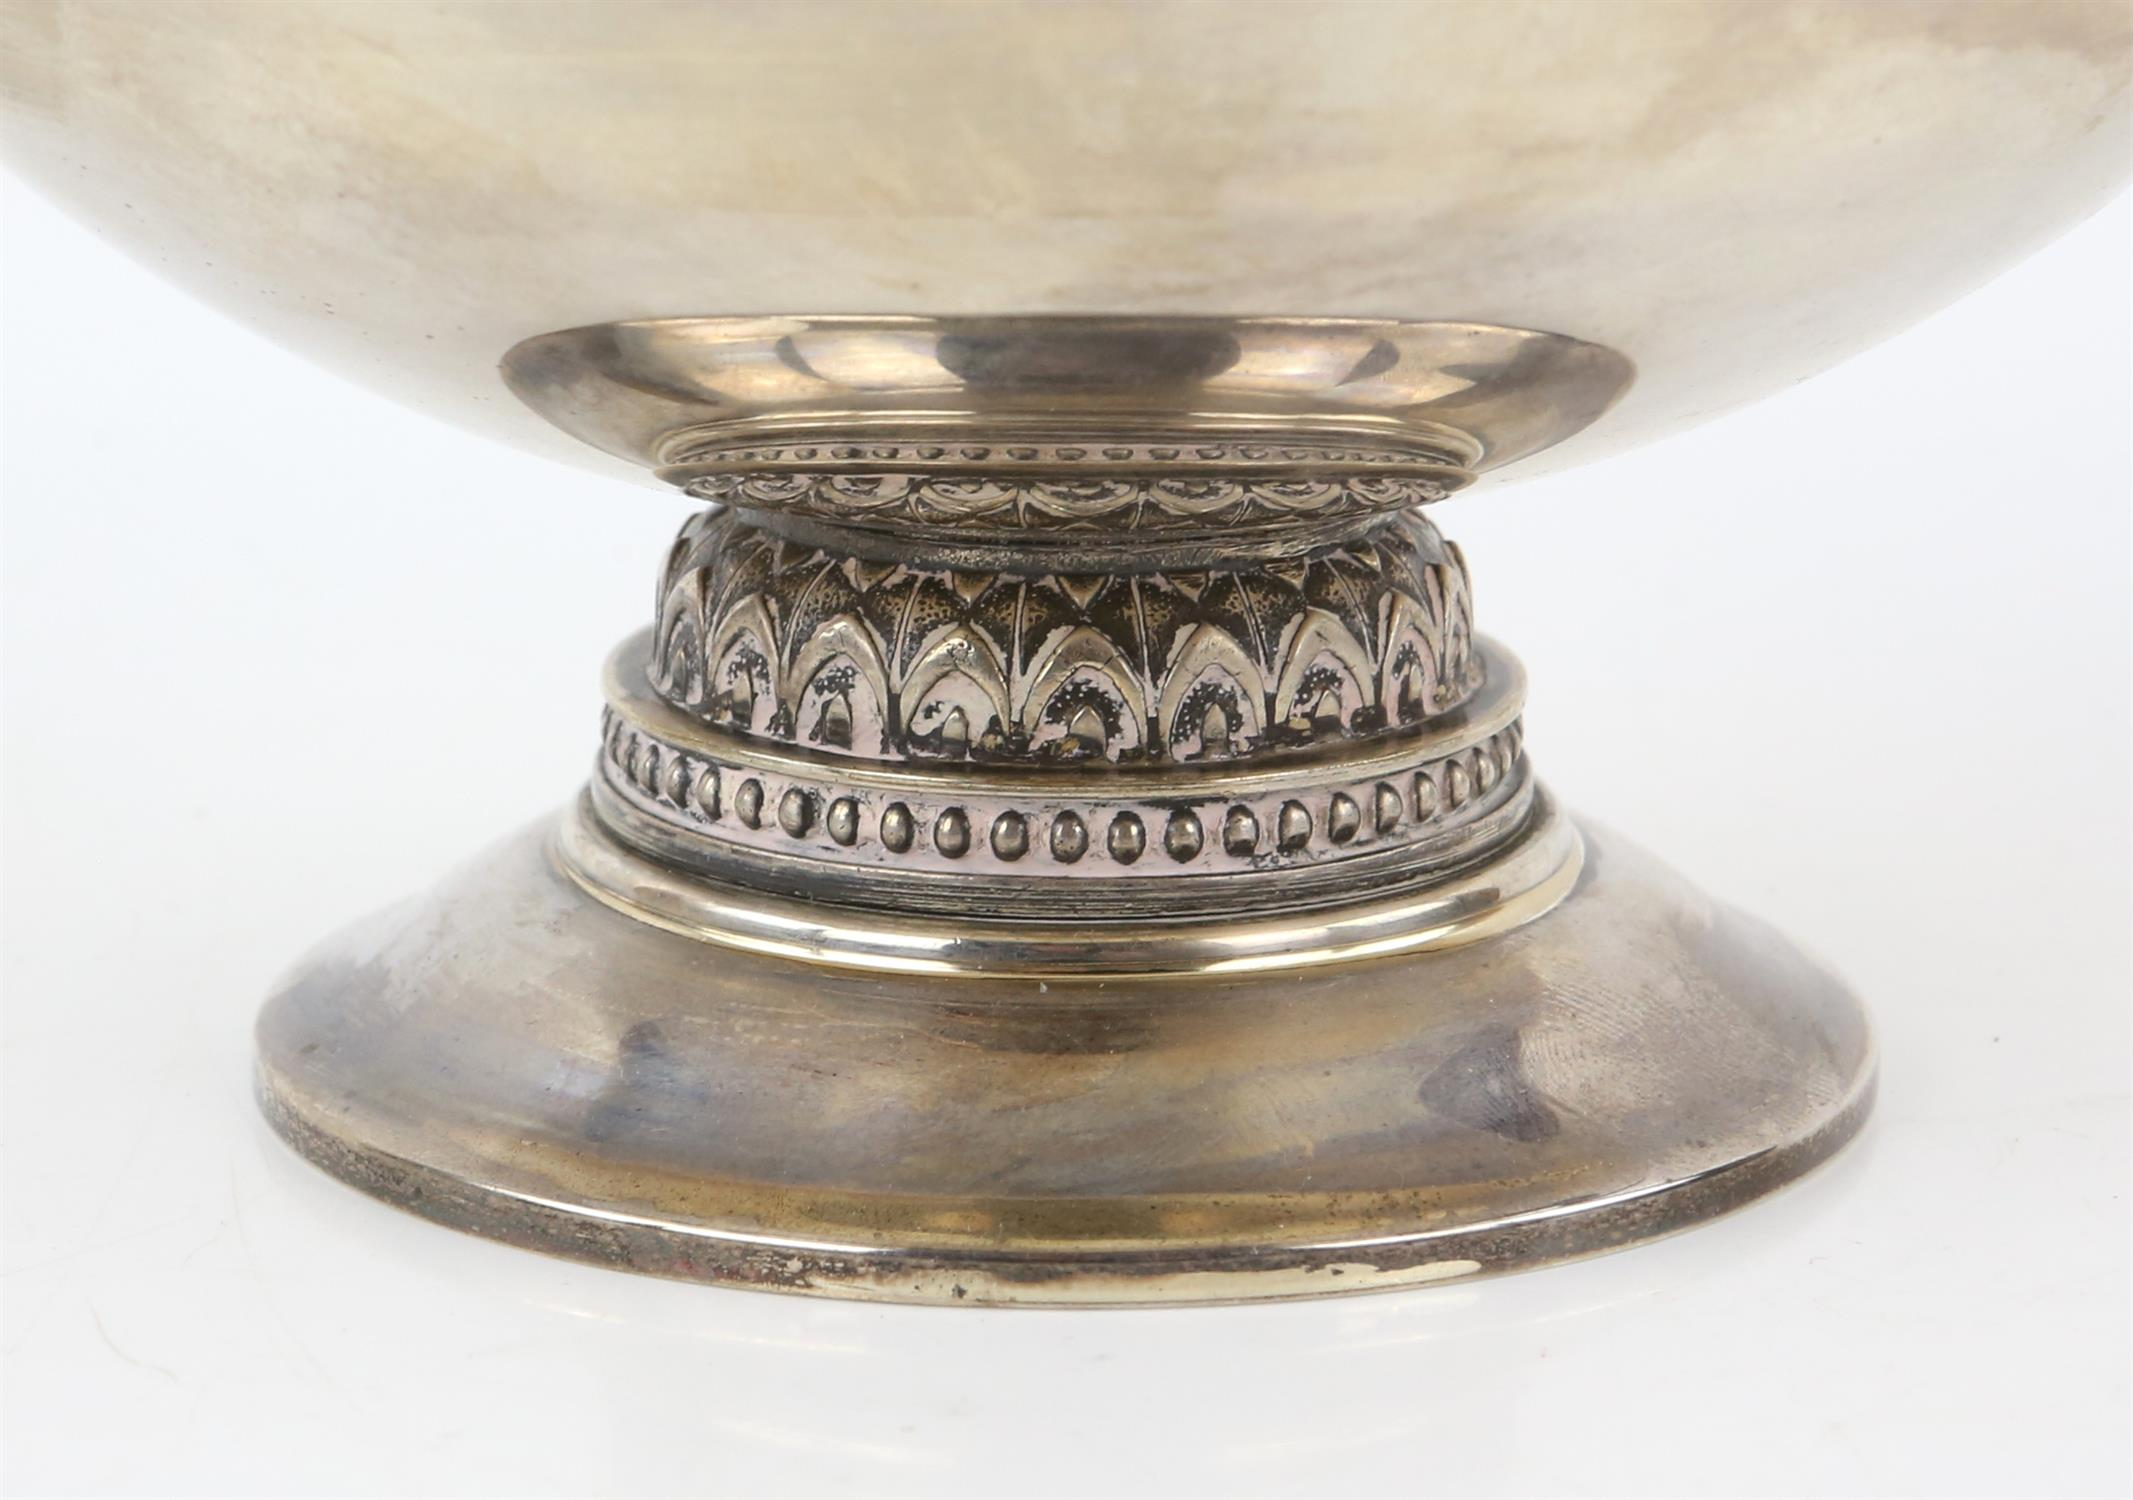 Modern silver bowl with beaded decoration on round foot, by Adie Bros. Ltd, Birmingham, 1970, 10oz, - Image 2 of 5